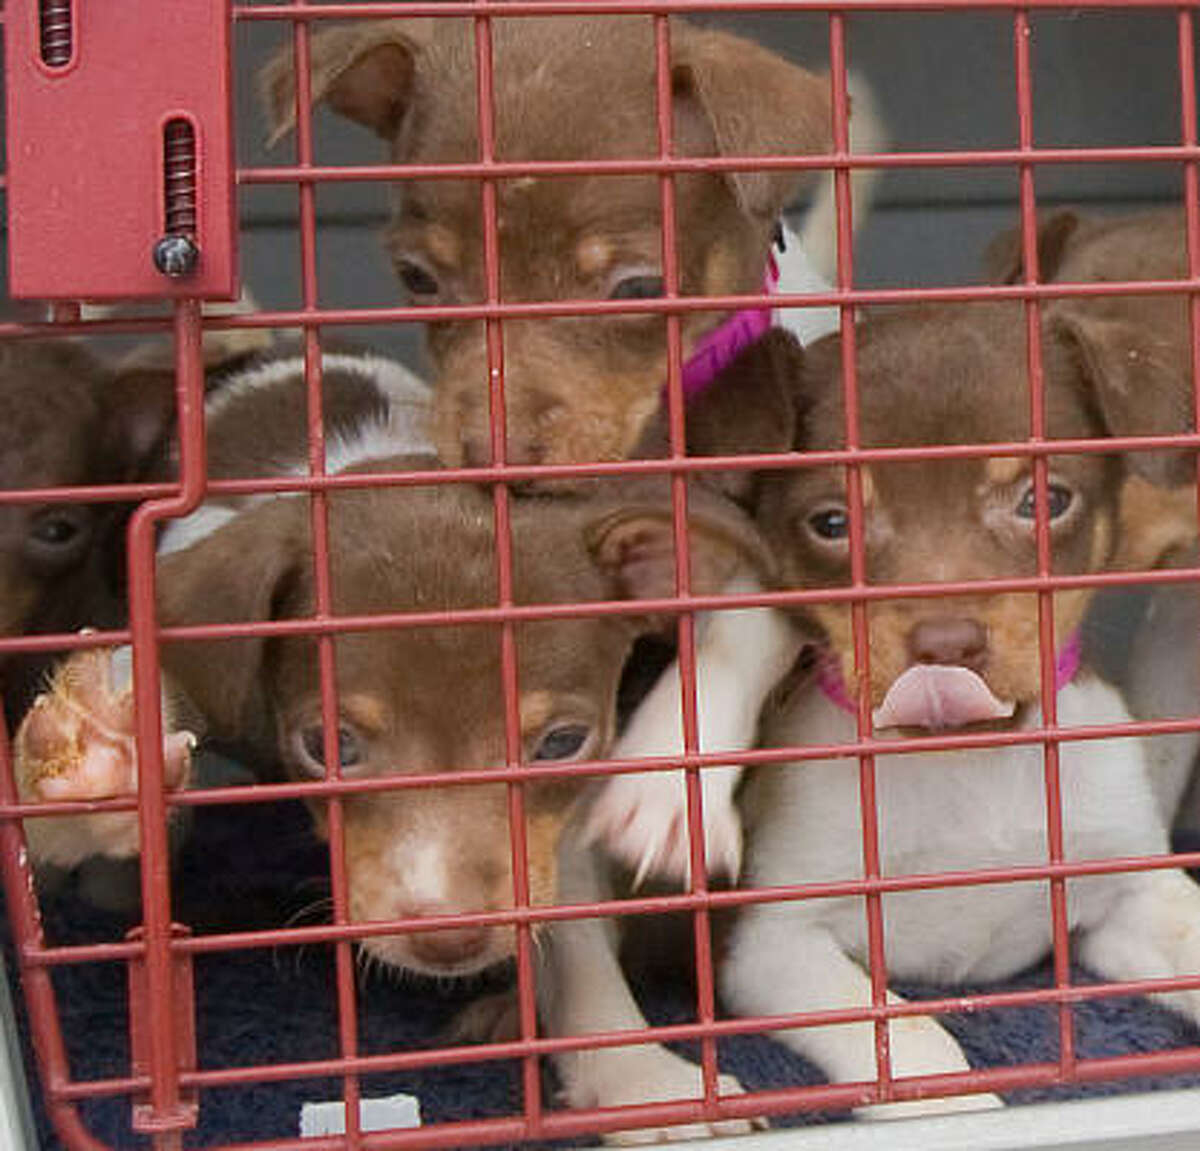 Rat Terrier puppies during their arrival to the Houston SPCA along with 18 adult Rat Terriers, 13 Rat Terrier puppies, 1 Chihuahua puppy. The dogs wereseized after a officials shut down a puppy mill in Waco.